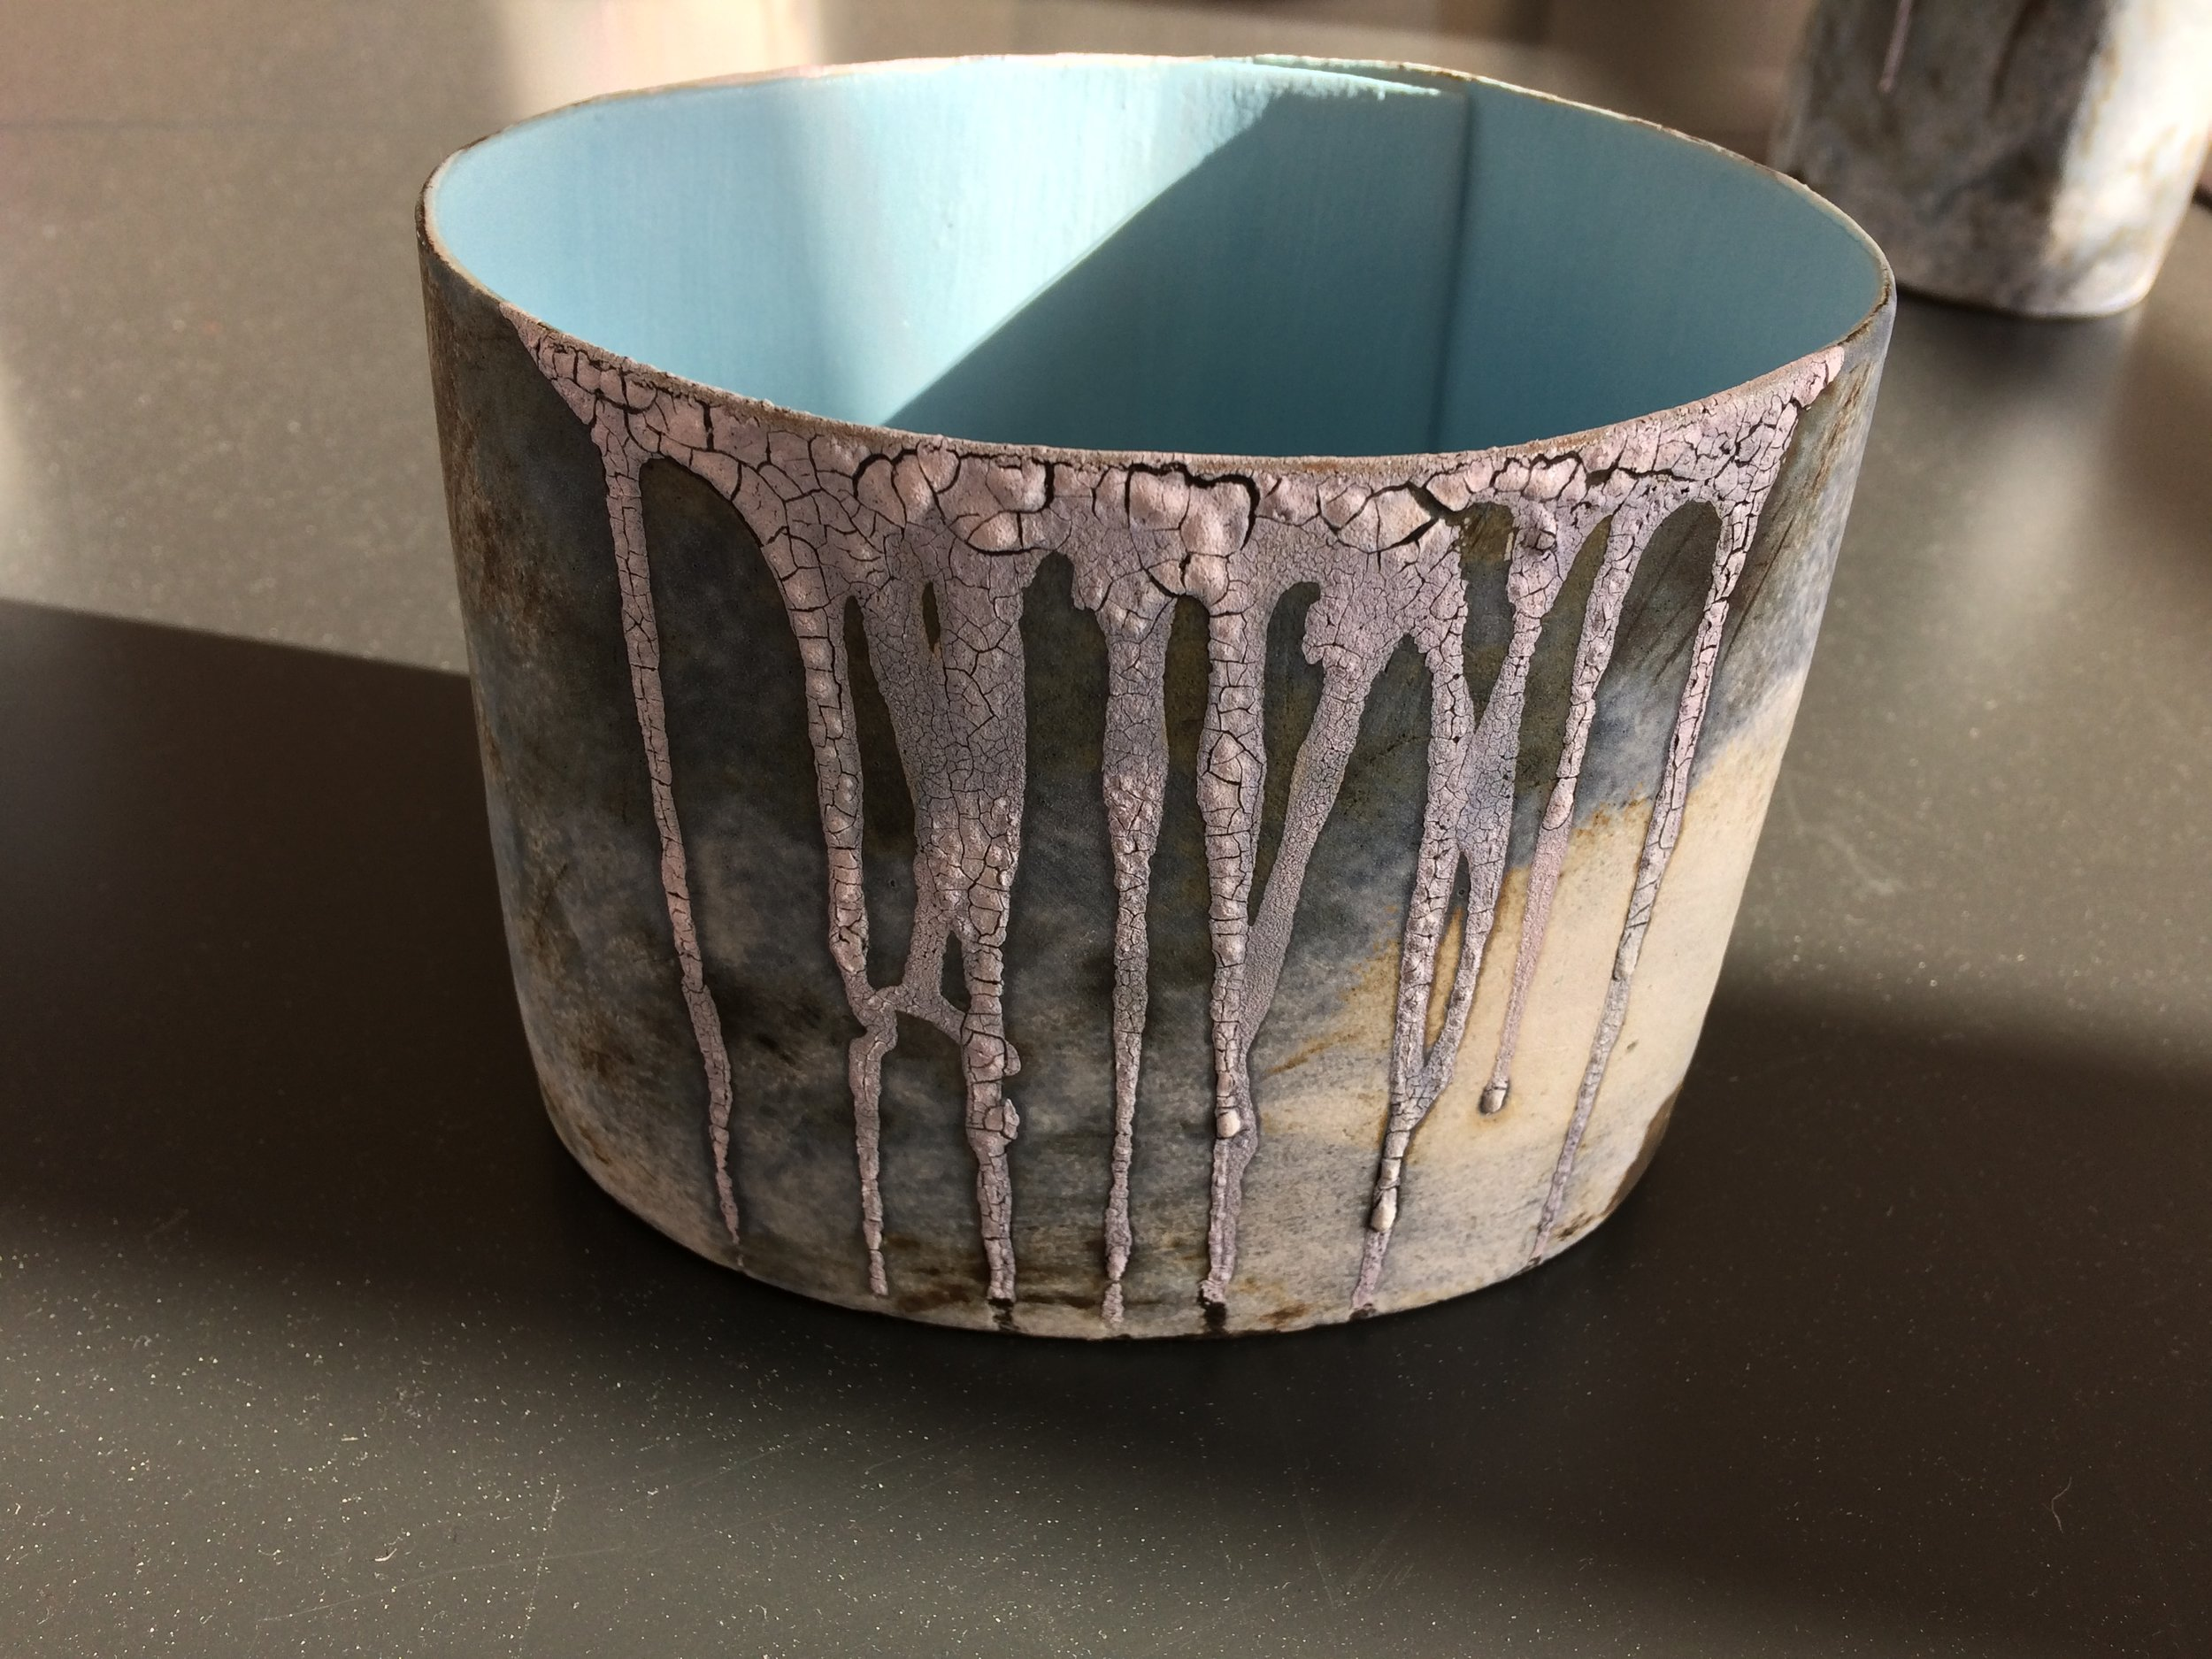 One of Hilary Mayo's beautiful Topography of a Landscape ceramics